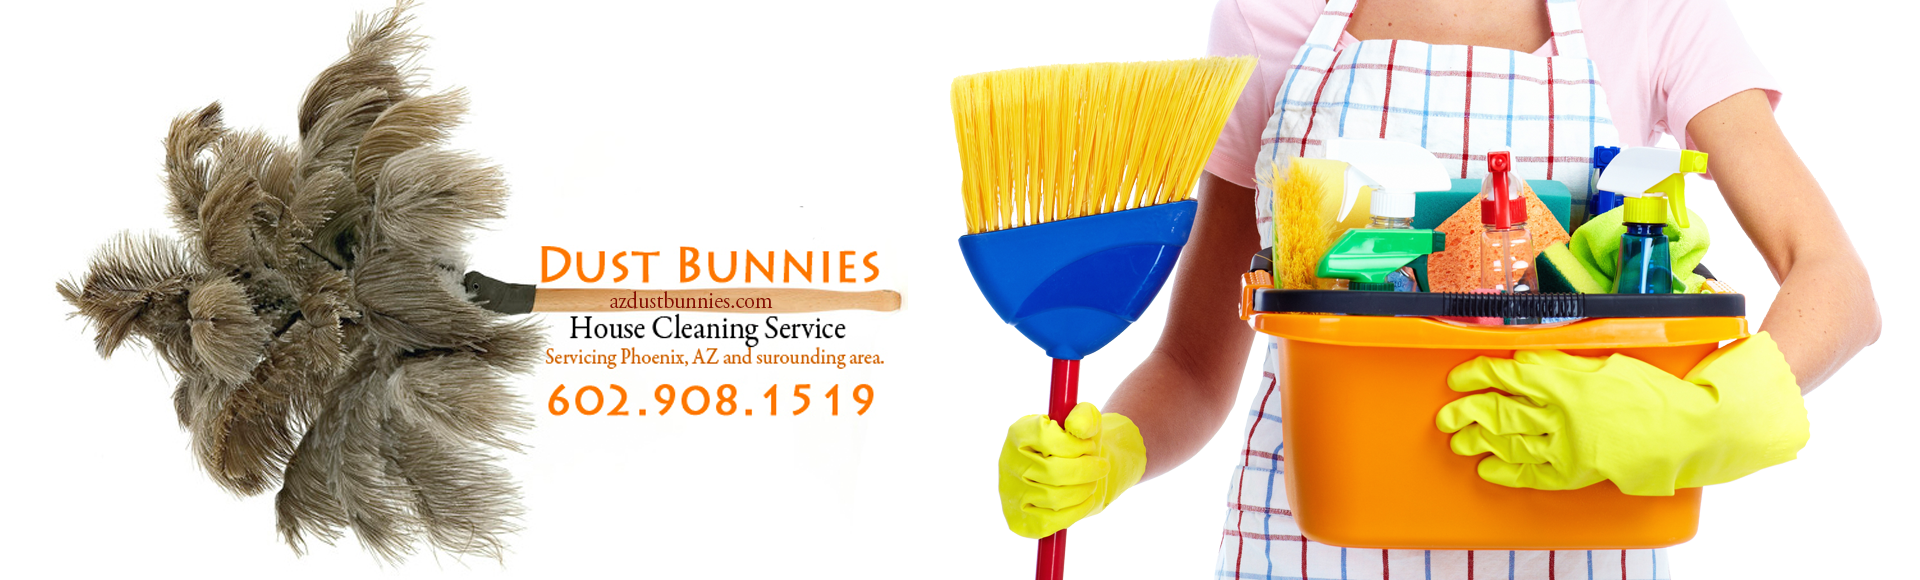 glendale arizona house cleaning services phoenix az arizona house cleaning service dustbunnies